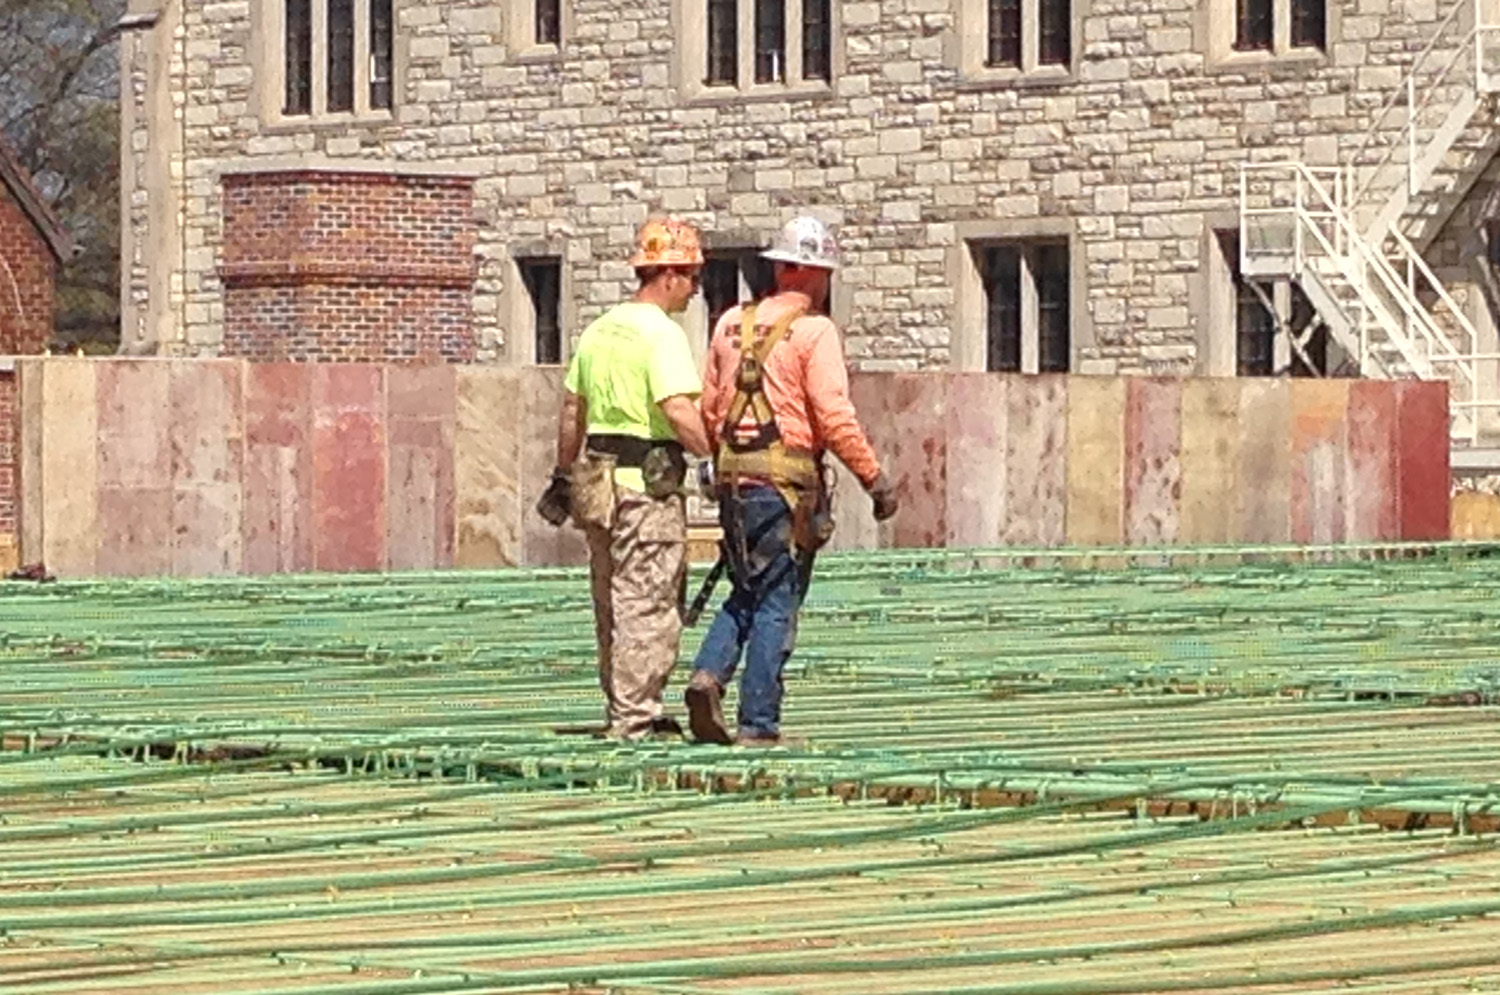 Rebar_Specialist_Central_Presbytarian_Church_1